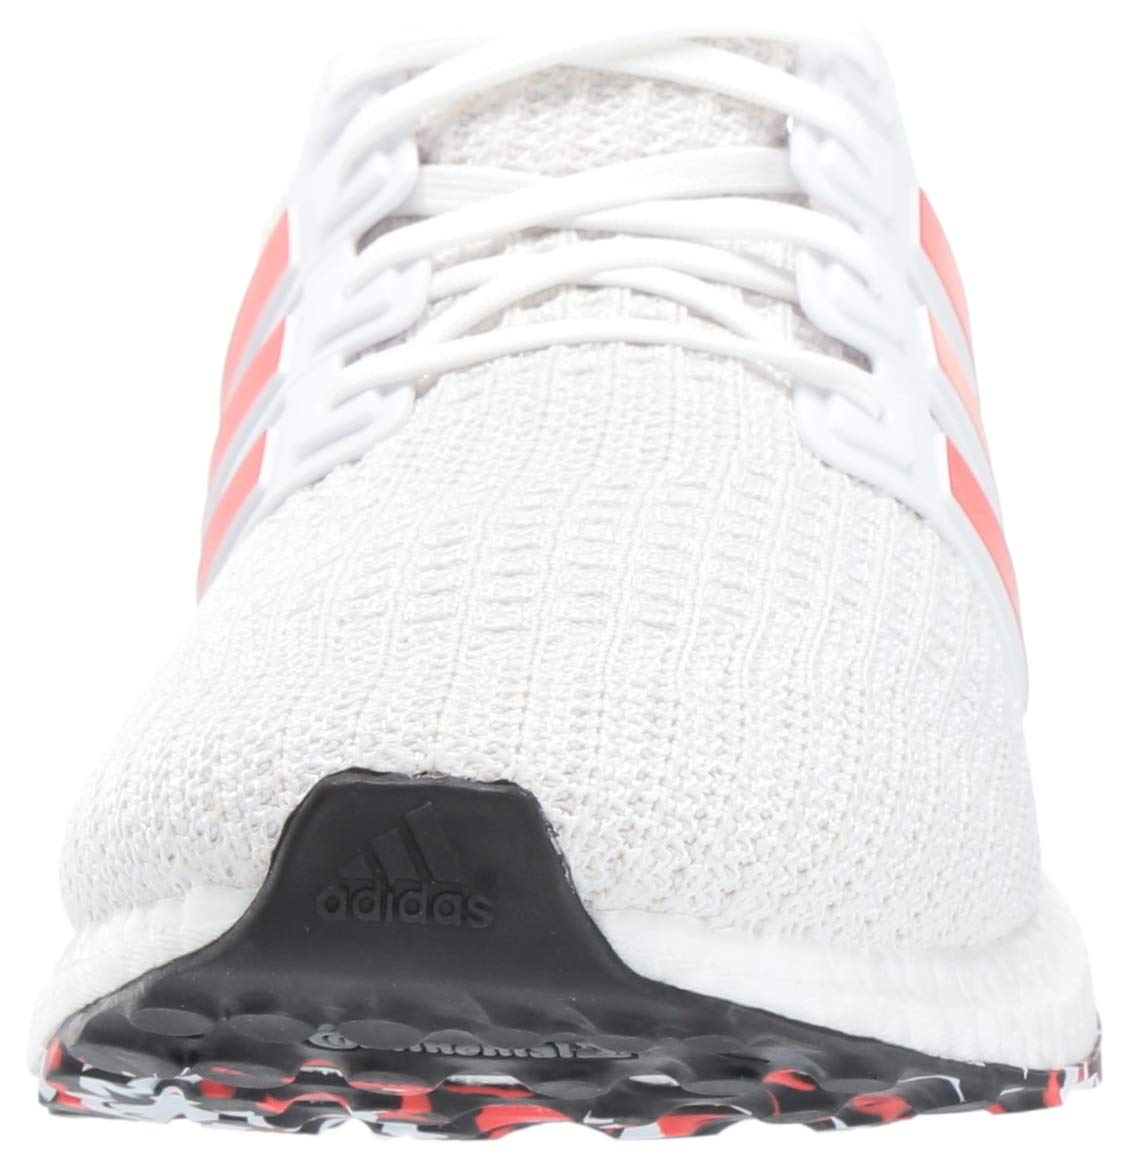 adidas Men's Ultraboost, Active red/Chalk White, 4 M US by adidas (Image #4)